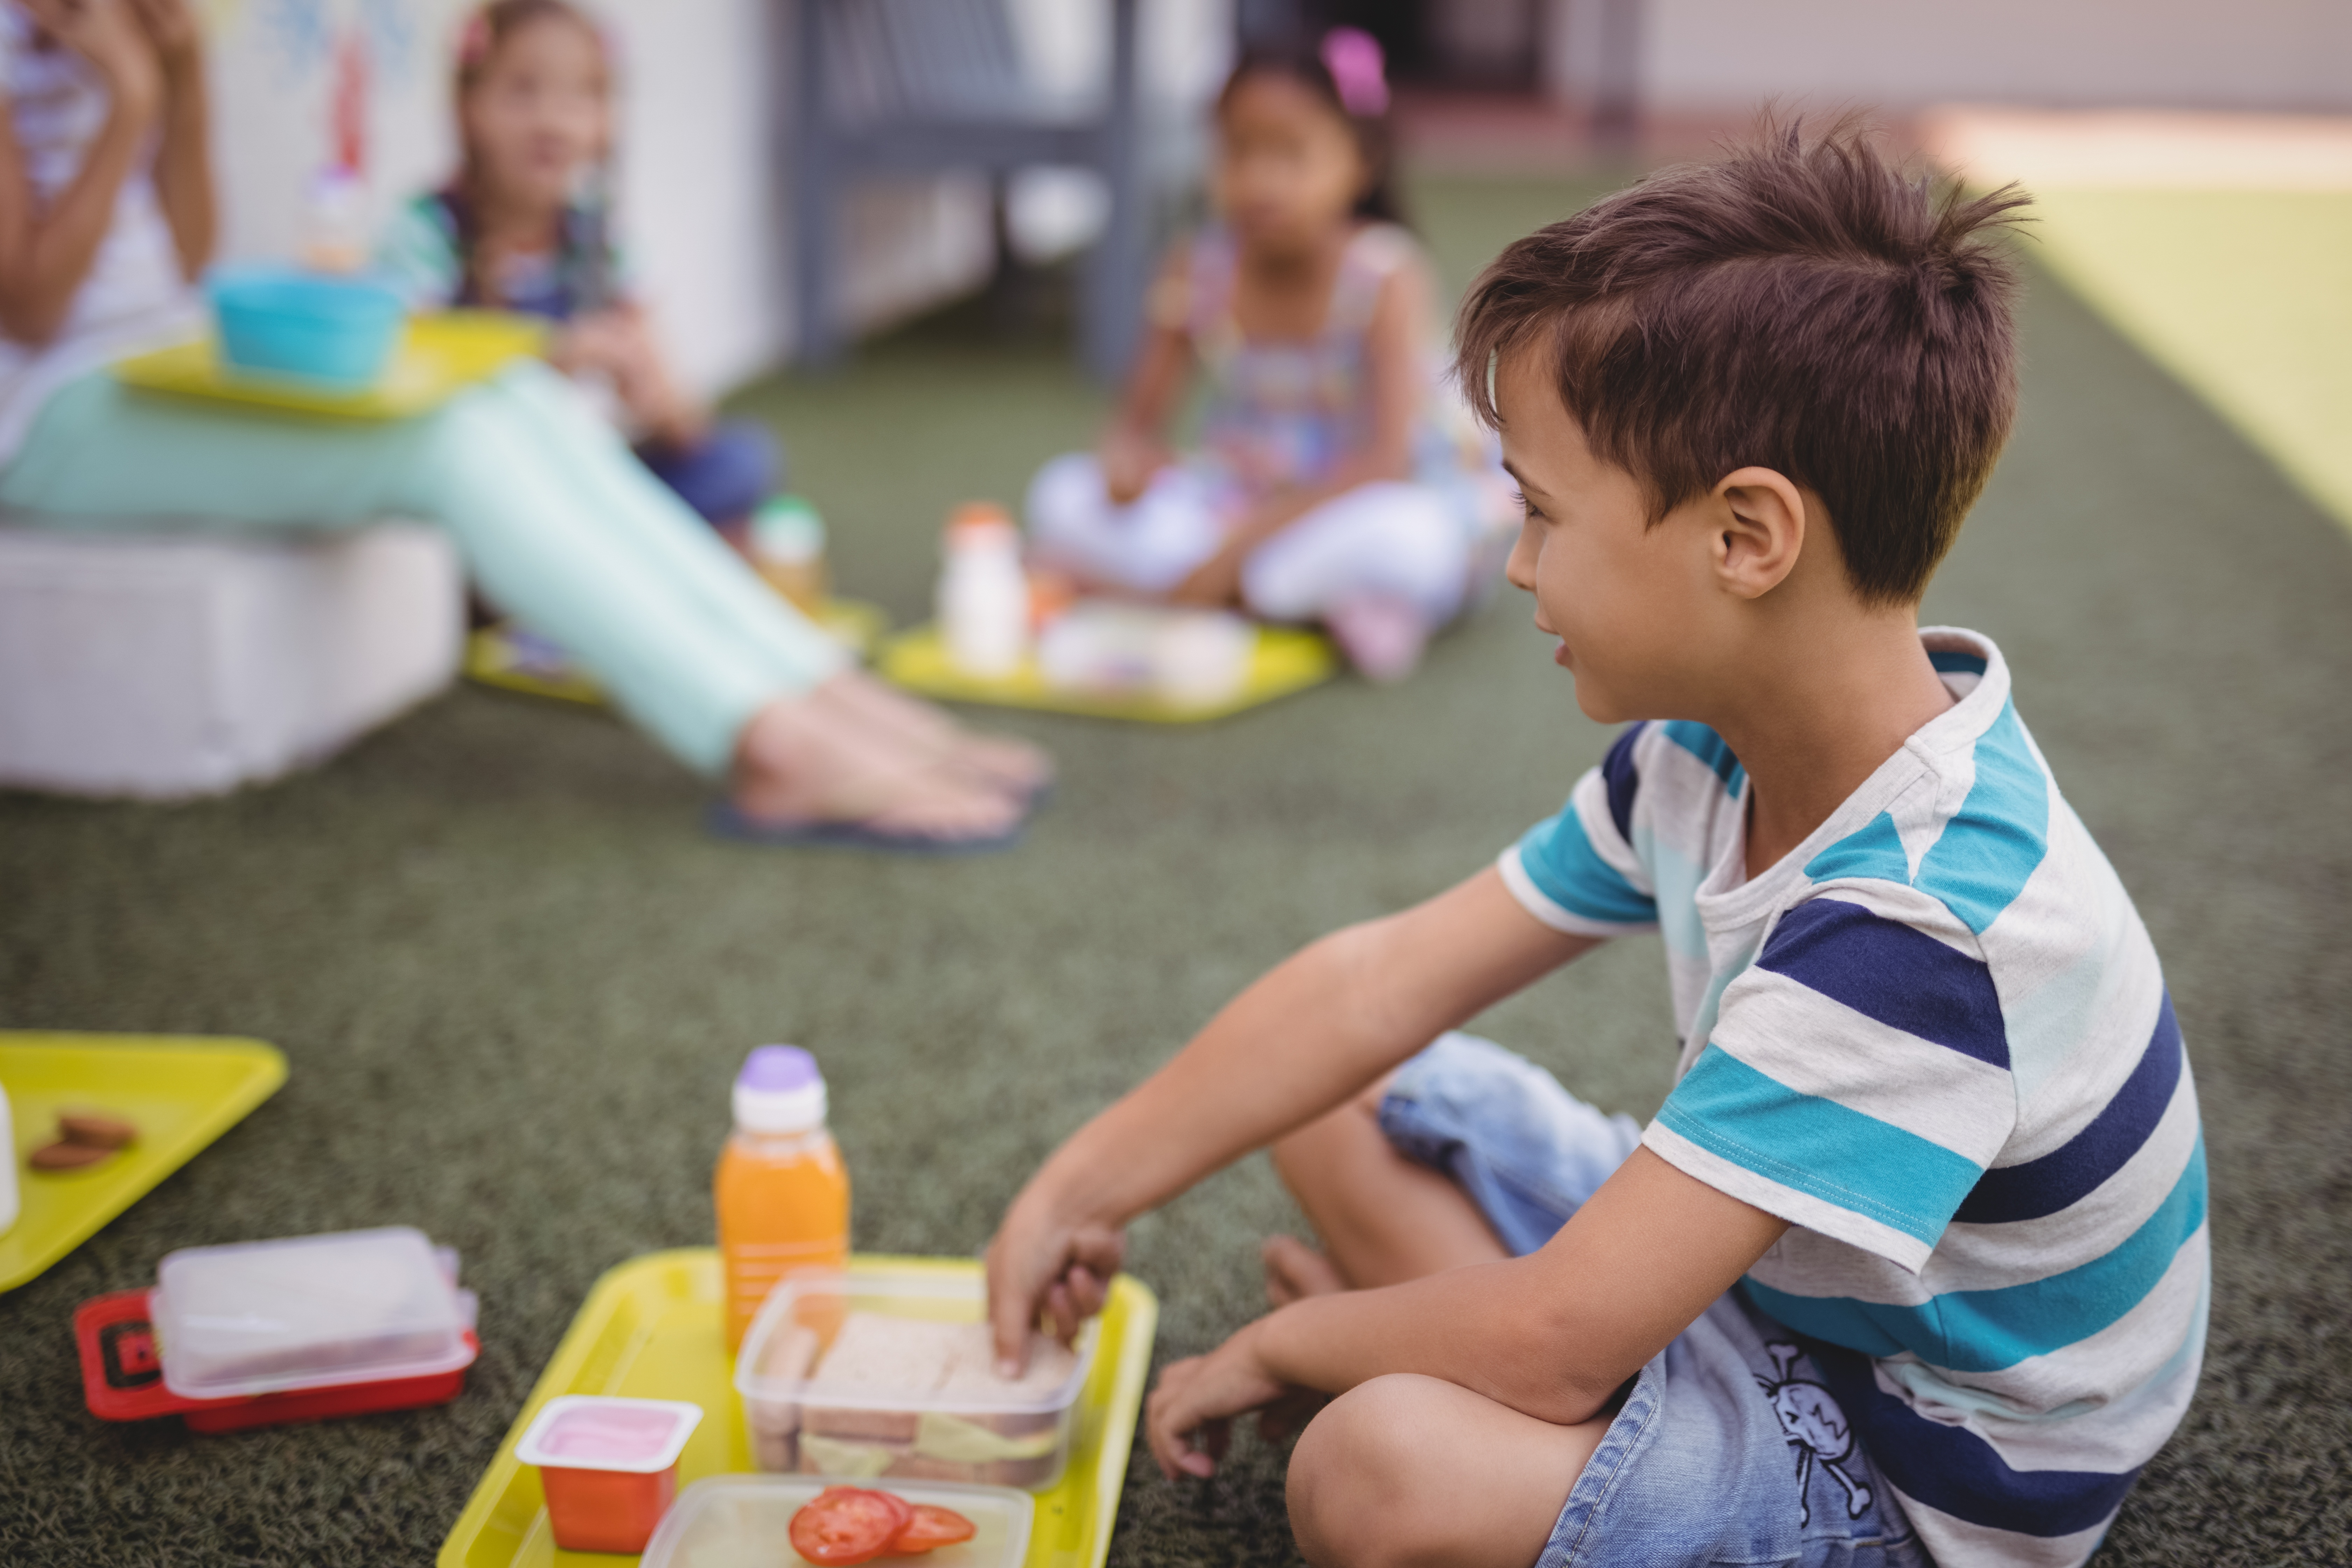 Free school meals during coronavirus (COVID-19): What you need to know